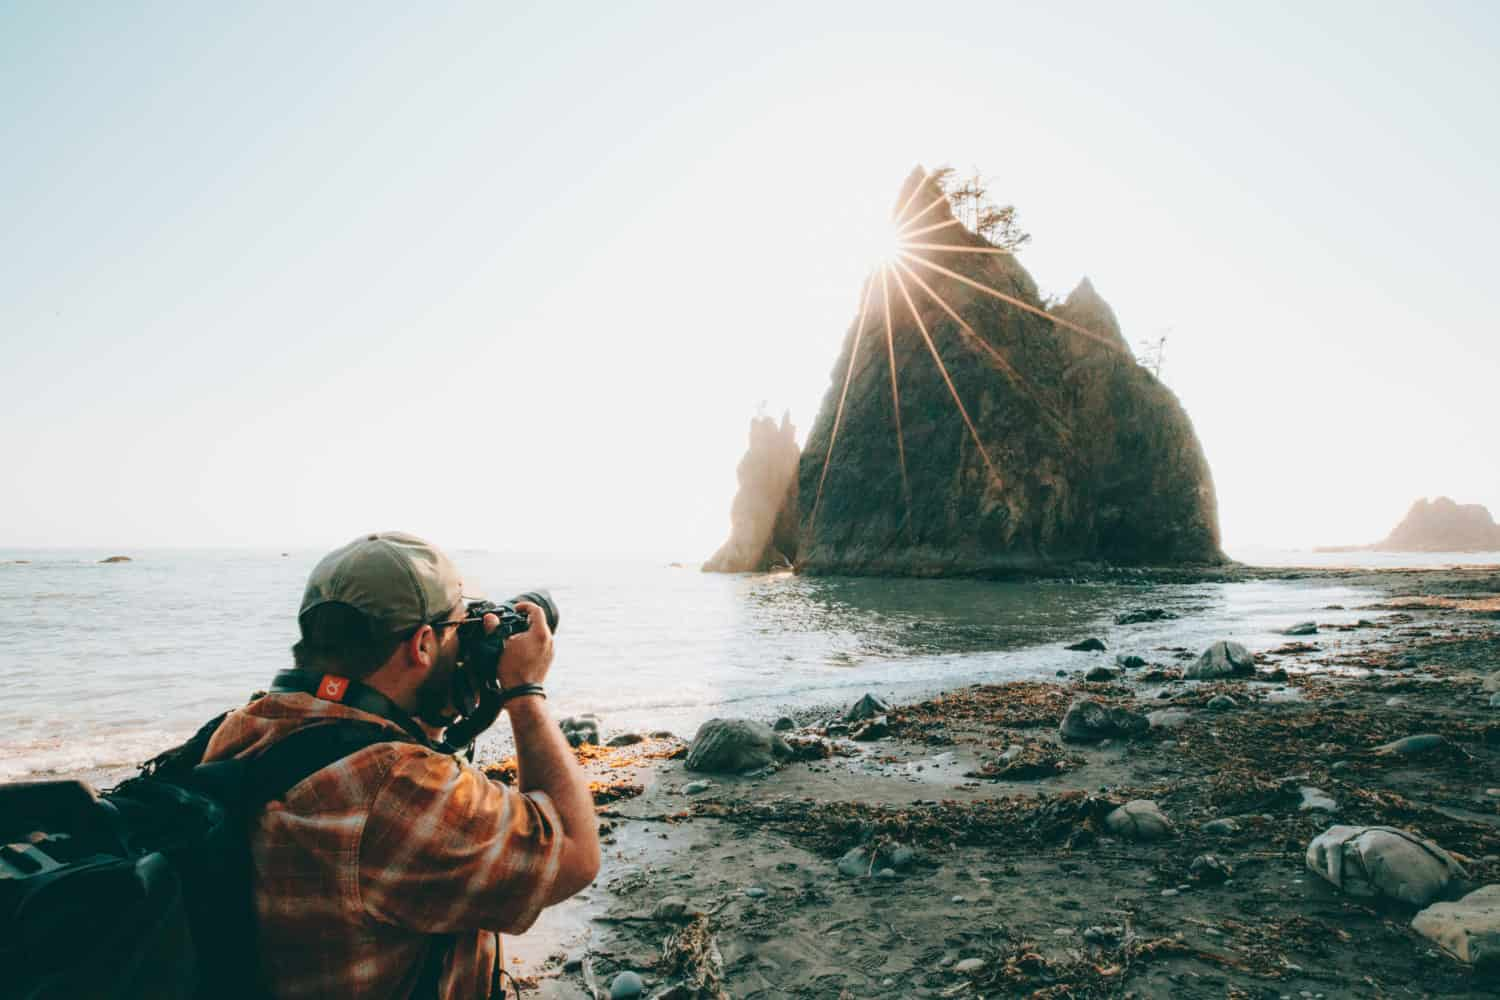 Michael Hollender photographing Rialto Beach, Olympic National Park